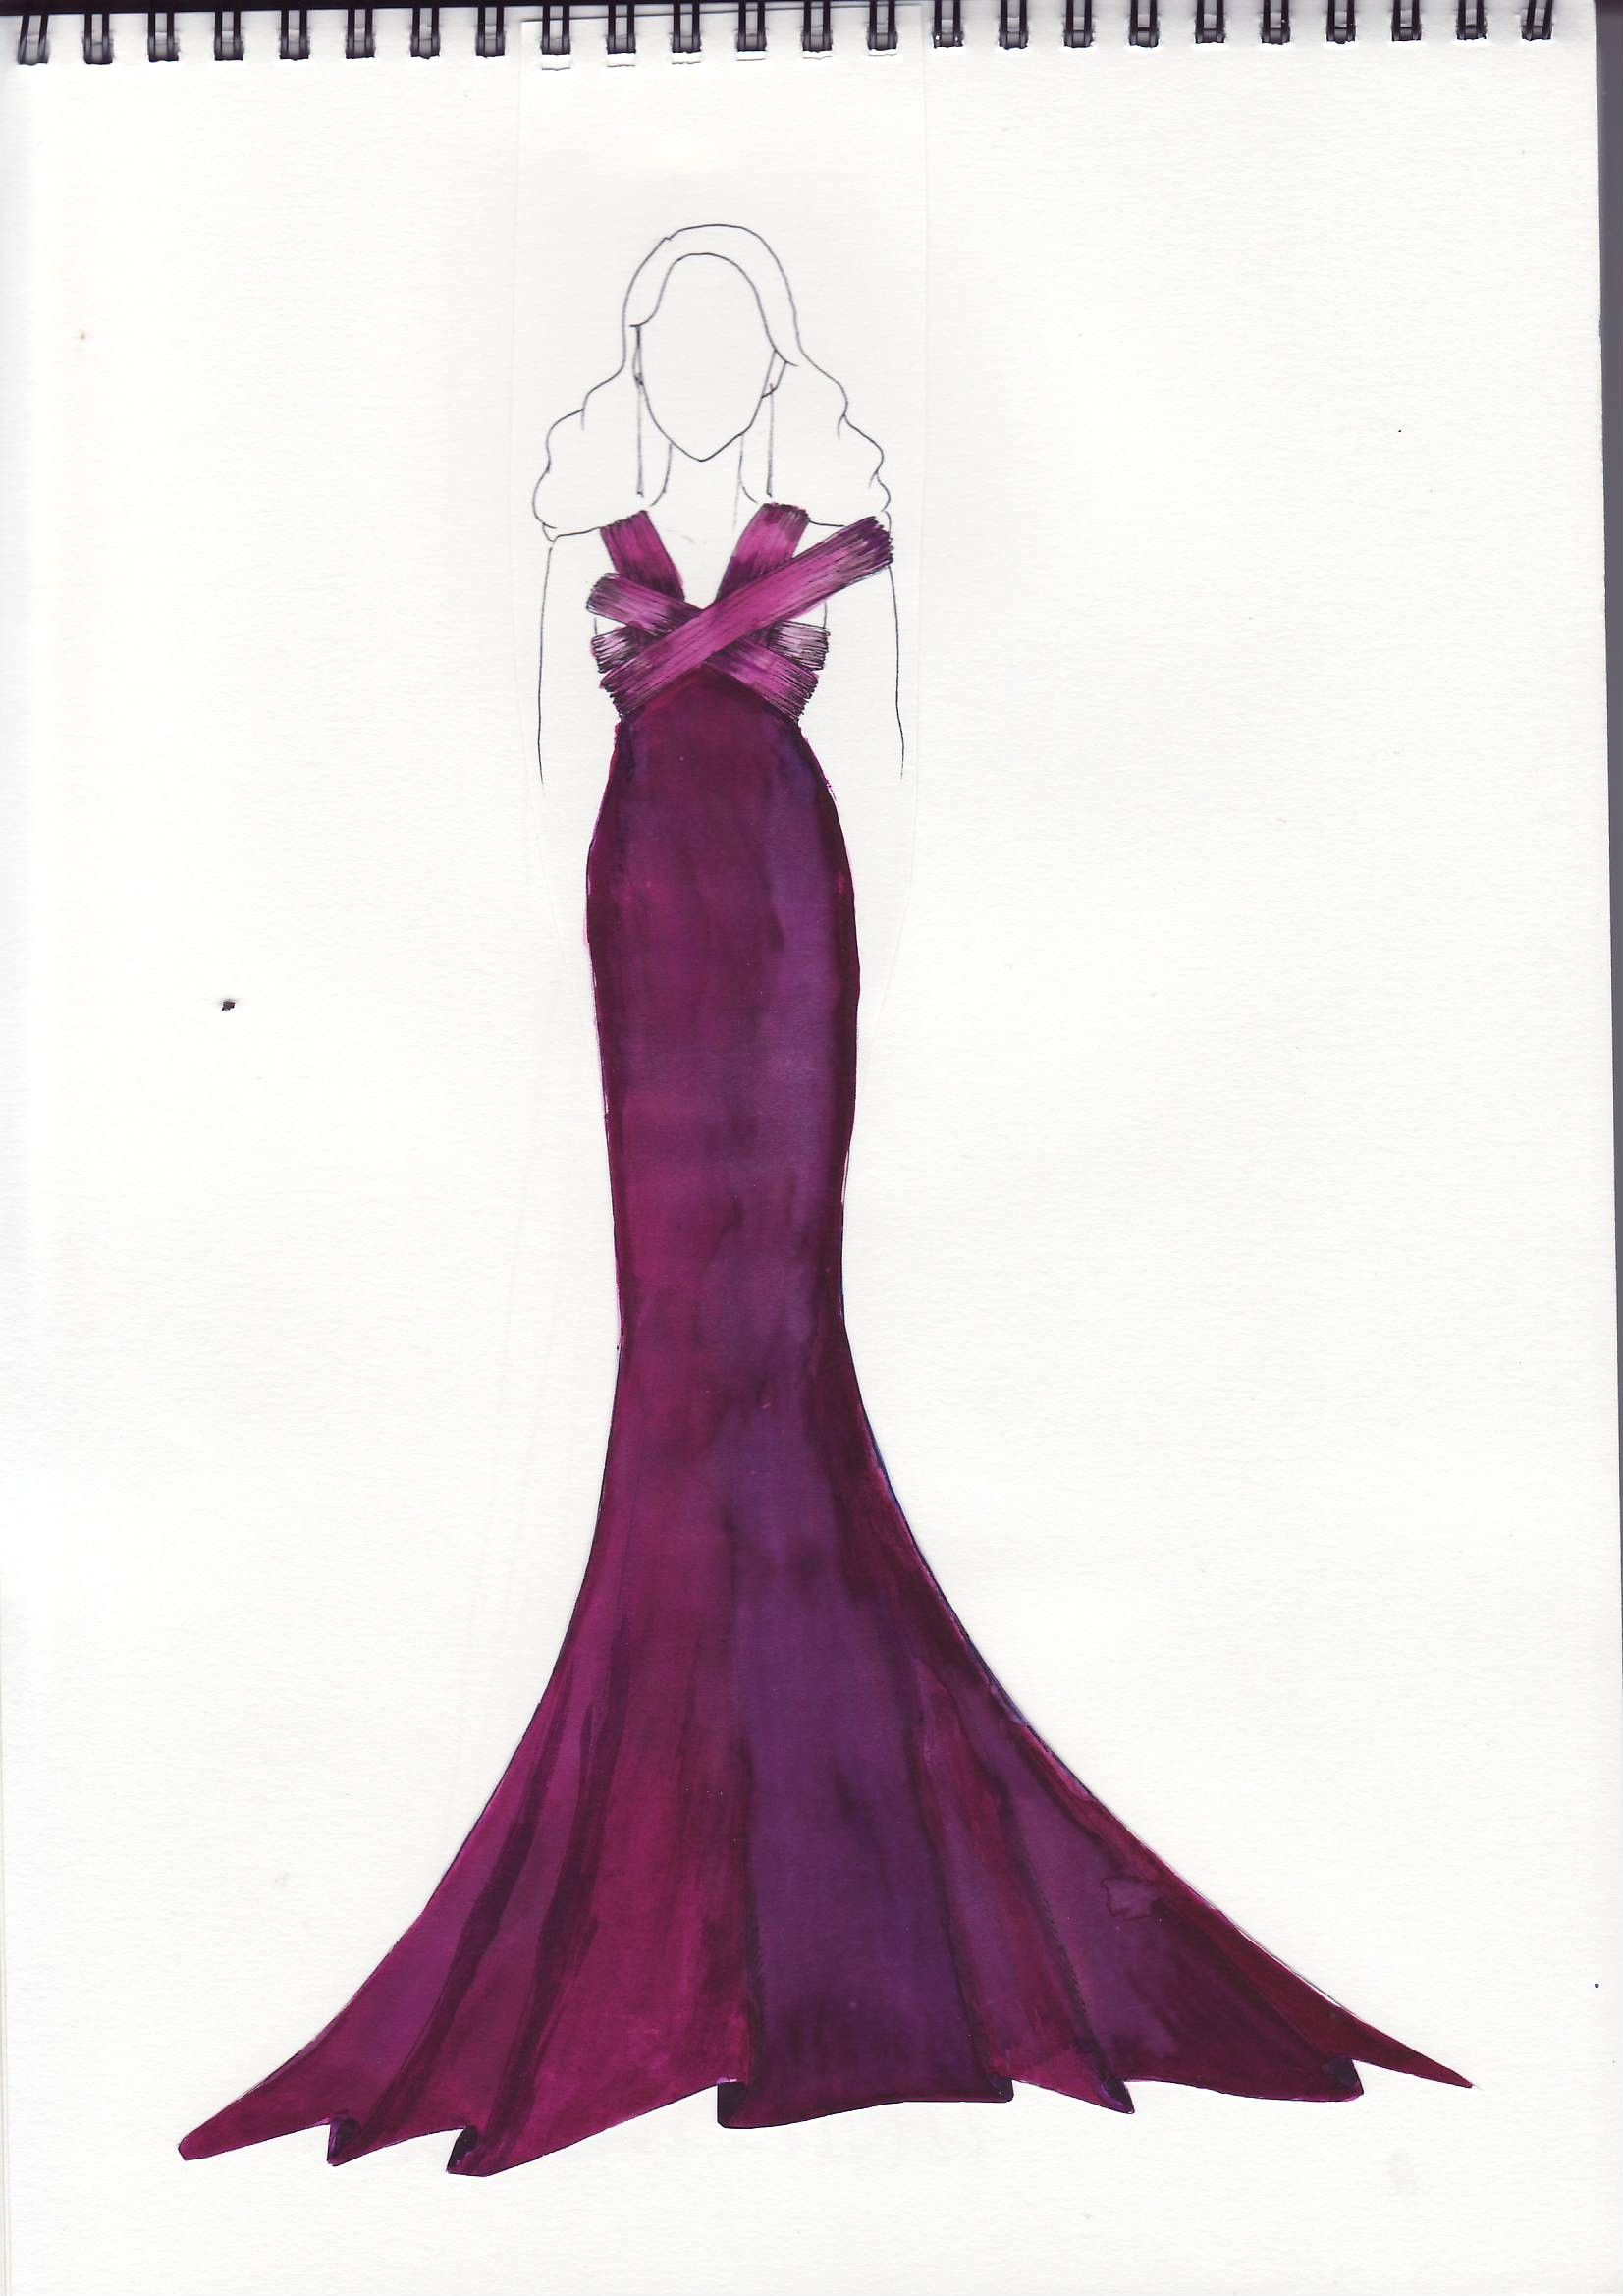 fashion sketch of evening gown | Sketches | Pinterest | Fashion ...